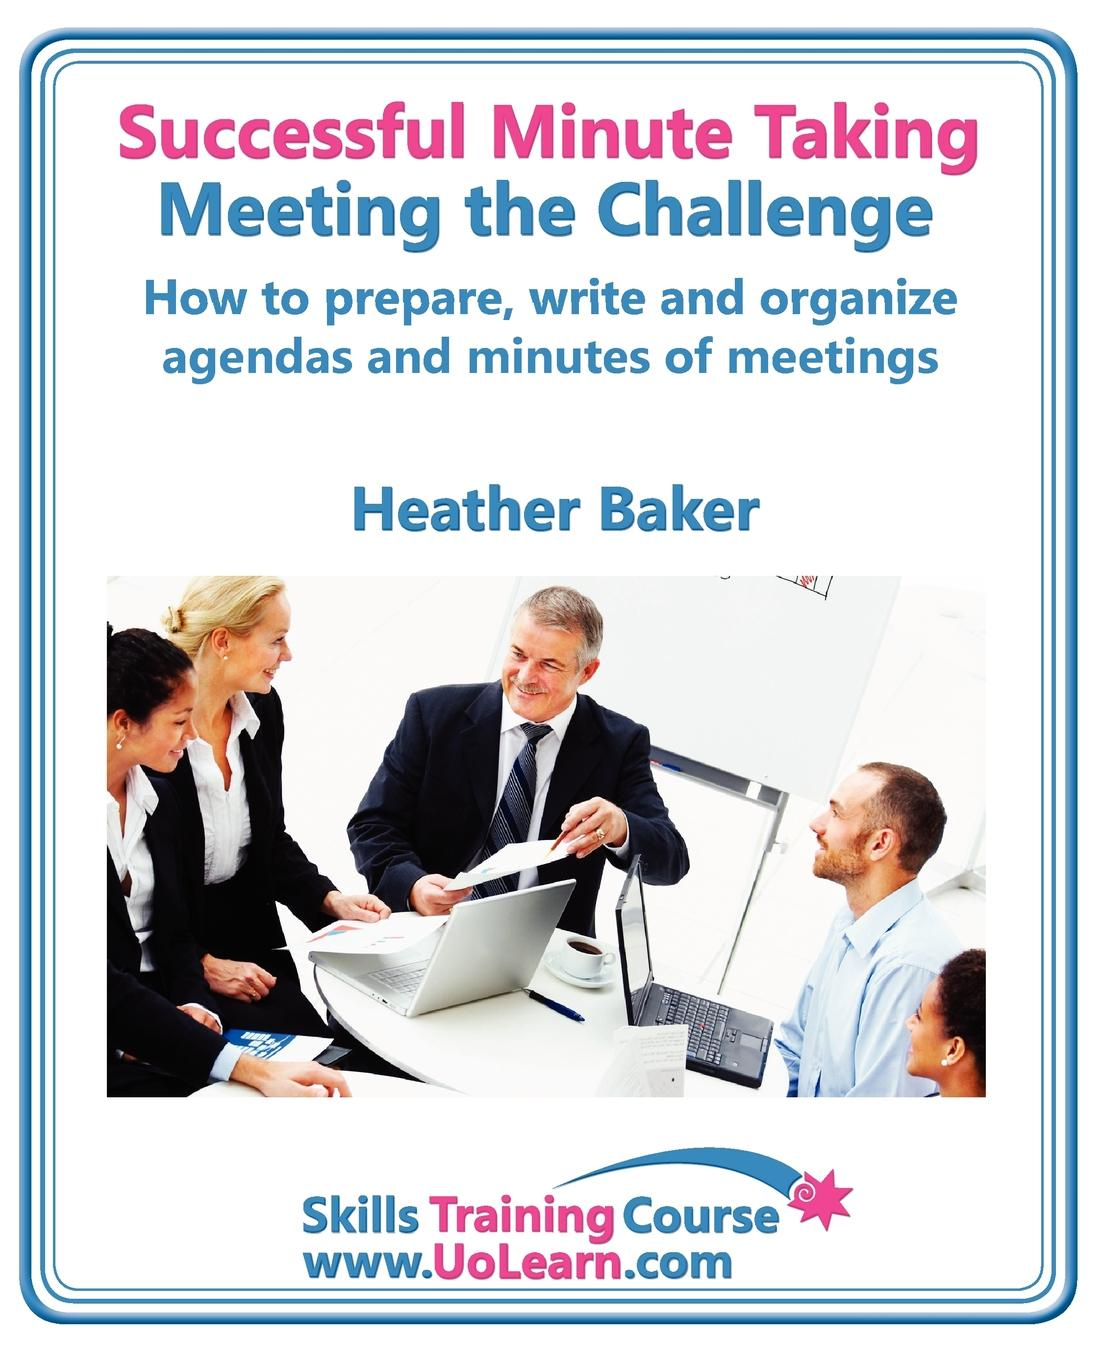 Heather Baker Successful Minute Taking and Writing. How to Prepare, Write and Organize Agendas and Minutes of Meetings. Learn to Take Notes and Write Minutes of Mee frederic brandt 10 minutes 10 years your definitive guide to a beautiful and youthful